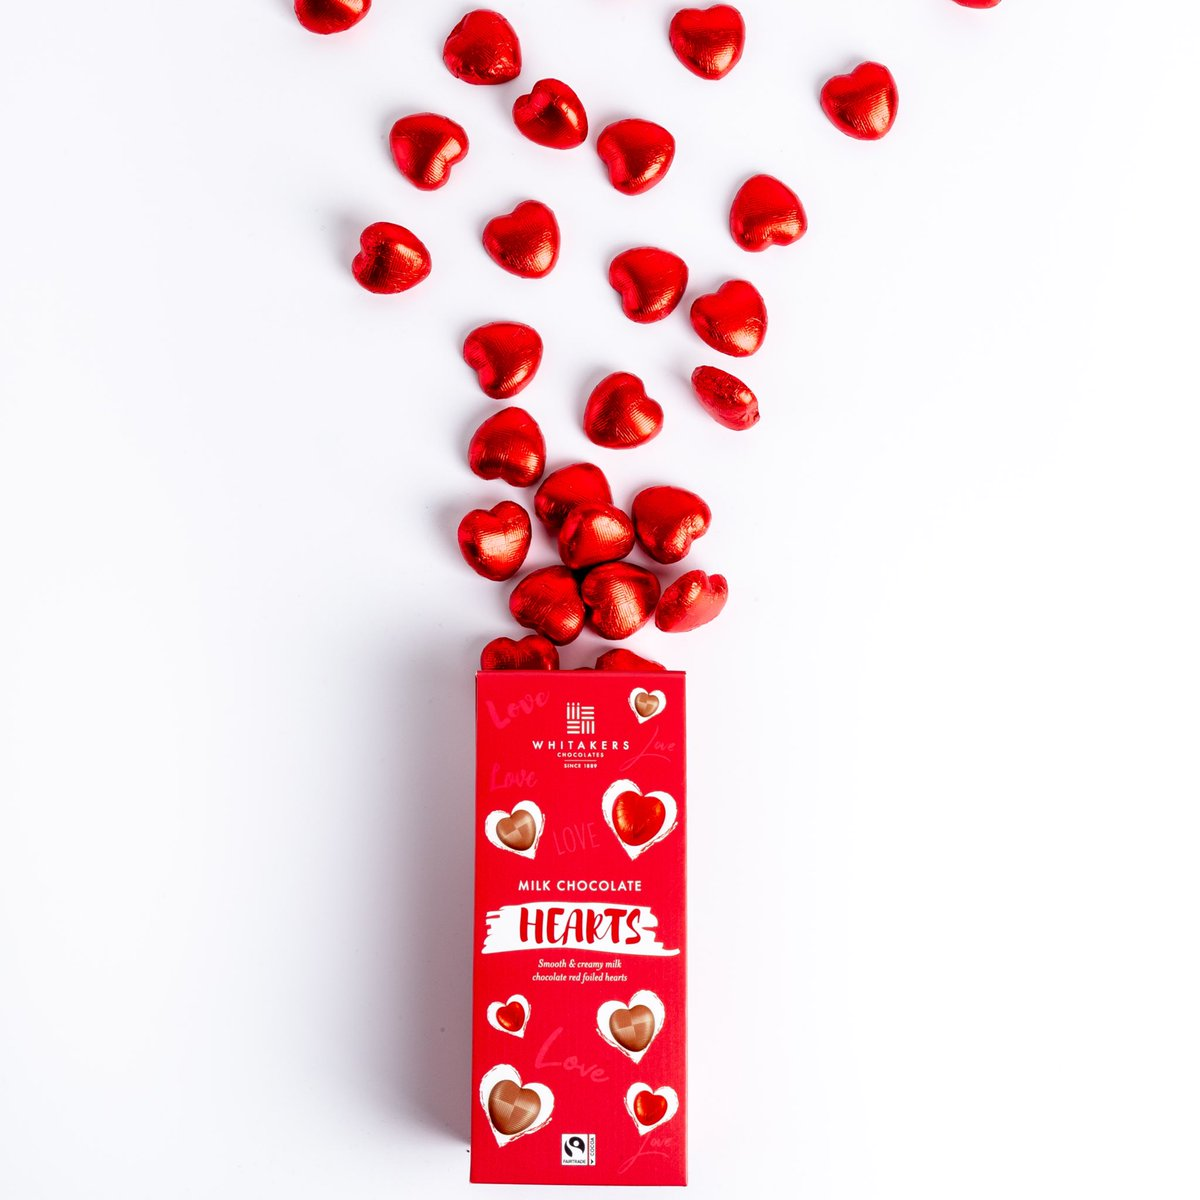 NEW NEW NEW....  #chocolate #Fairtrade #ValentinesDay #chocolatehearts #givelove #givewhitakerspic.twitter.com/HVsBSHTOyi